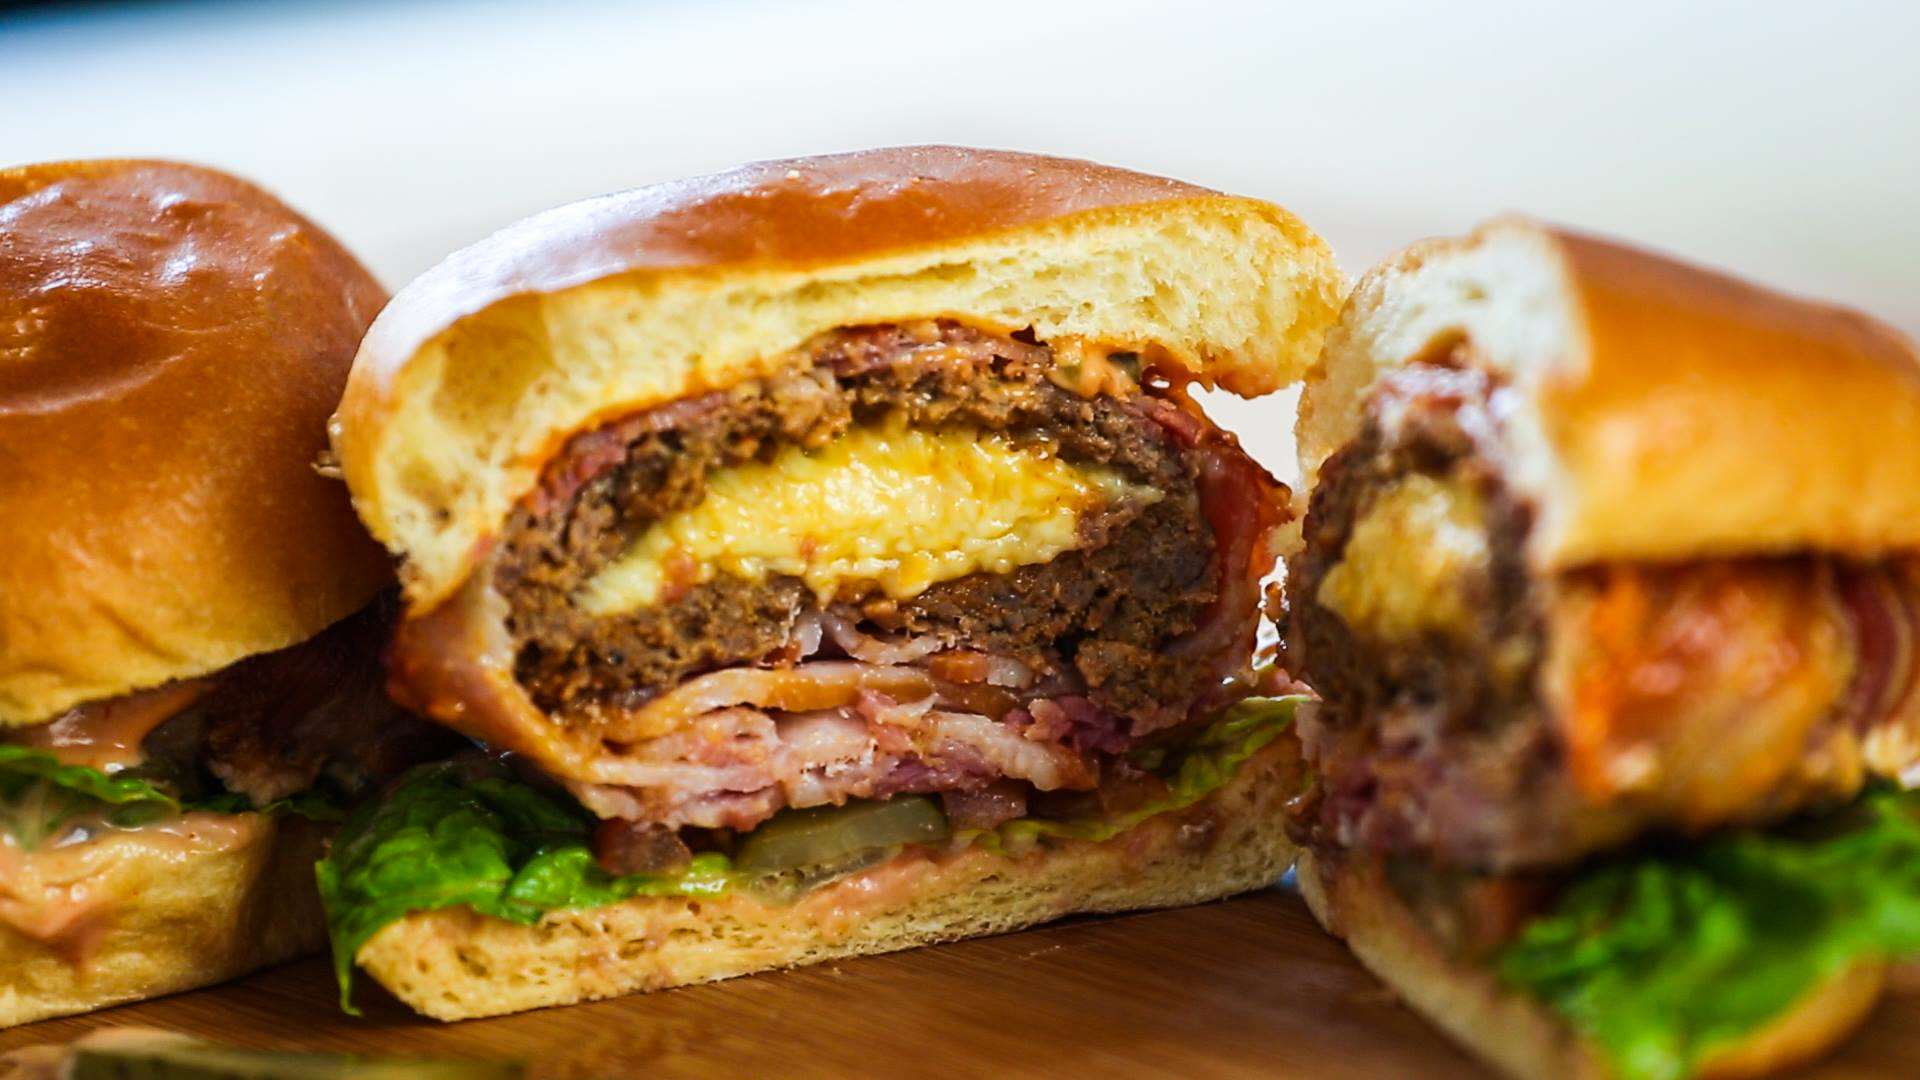 13410496 10154239392816323 965756677 o Heres How You Make Mozzarella Stuffed Bacon Burgers